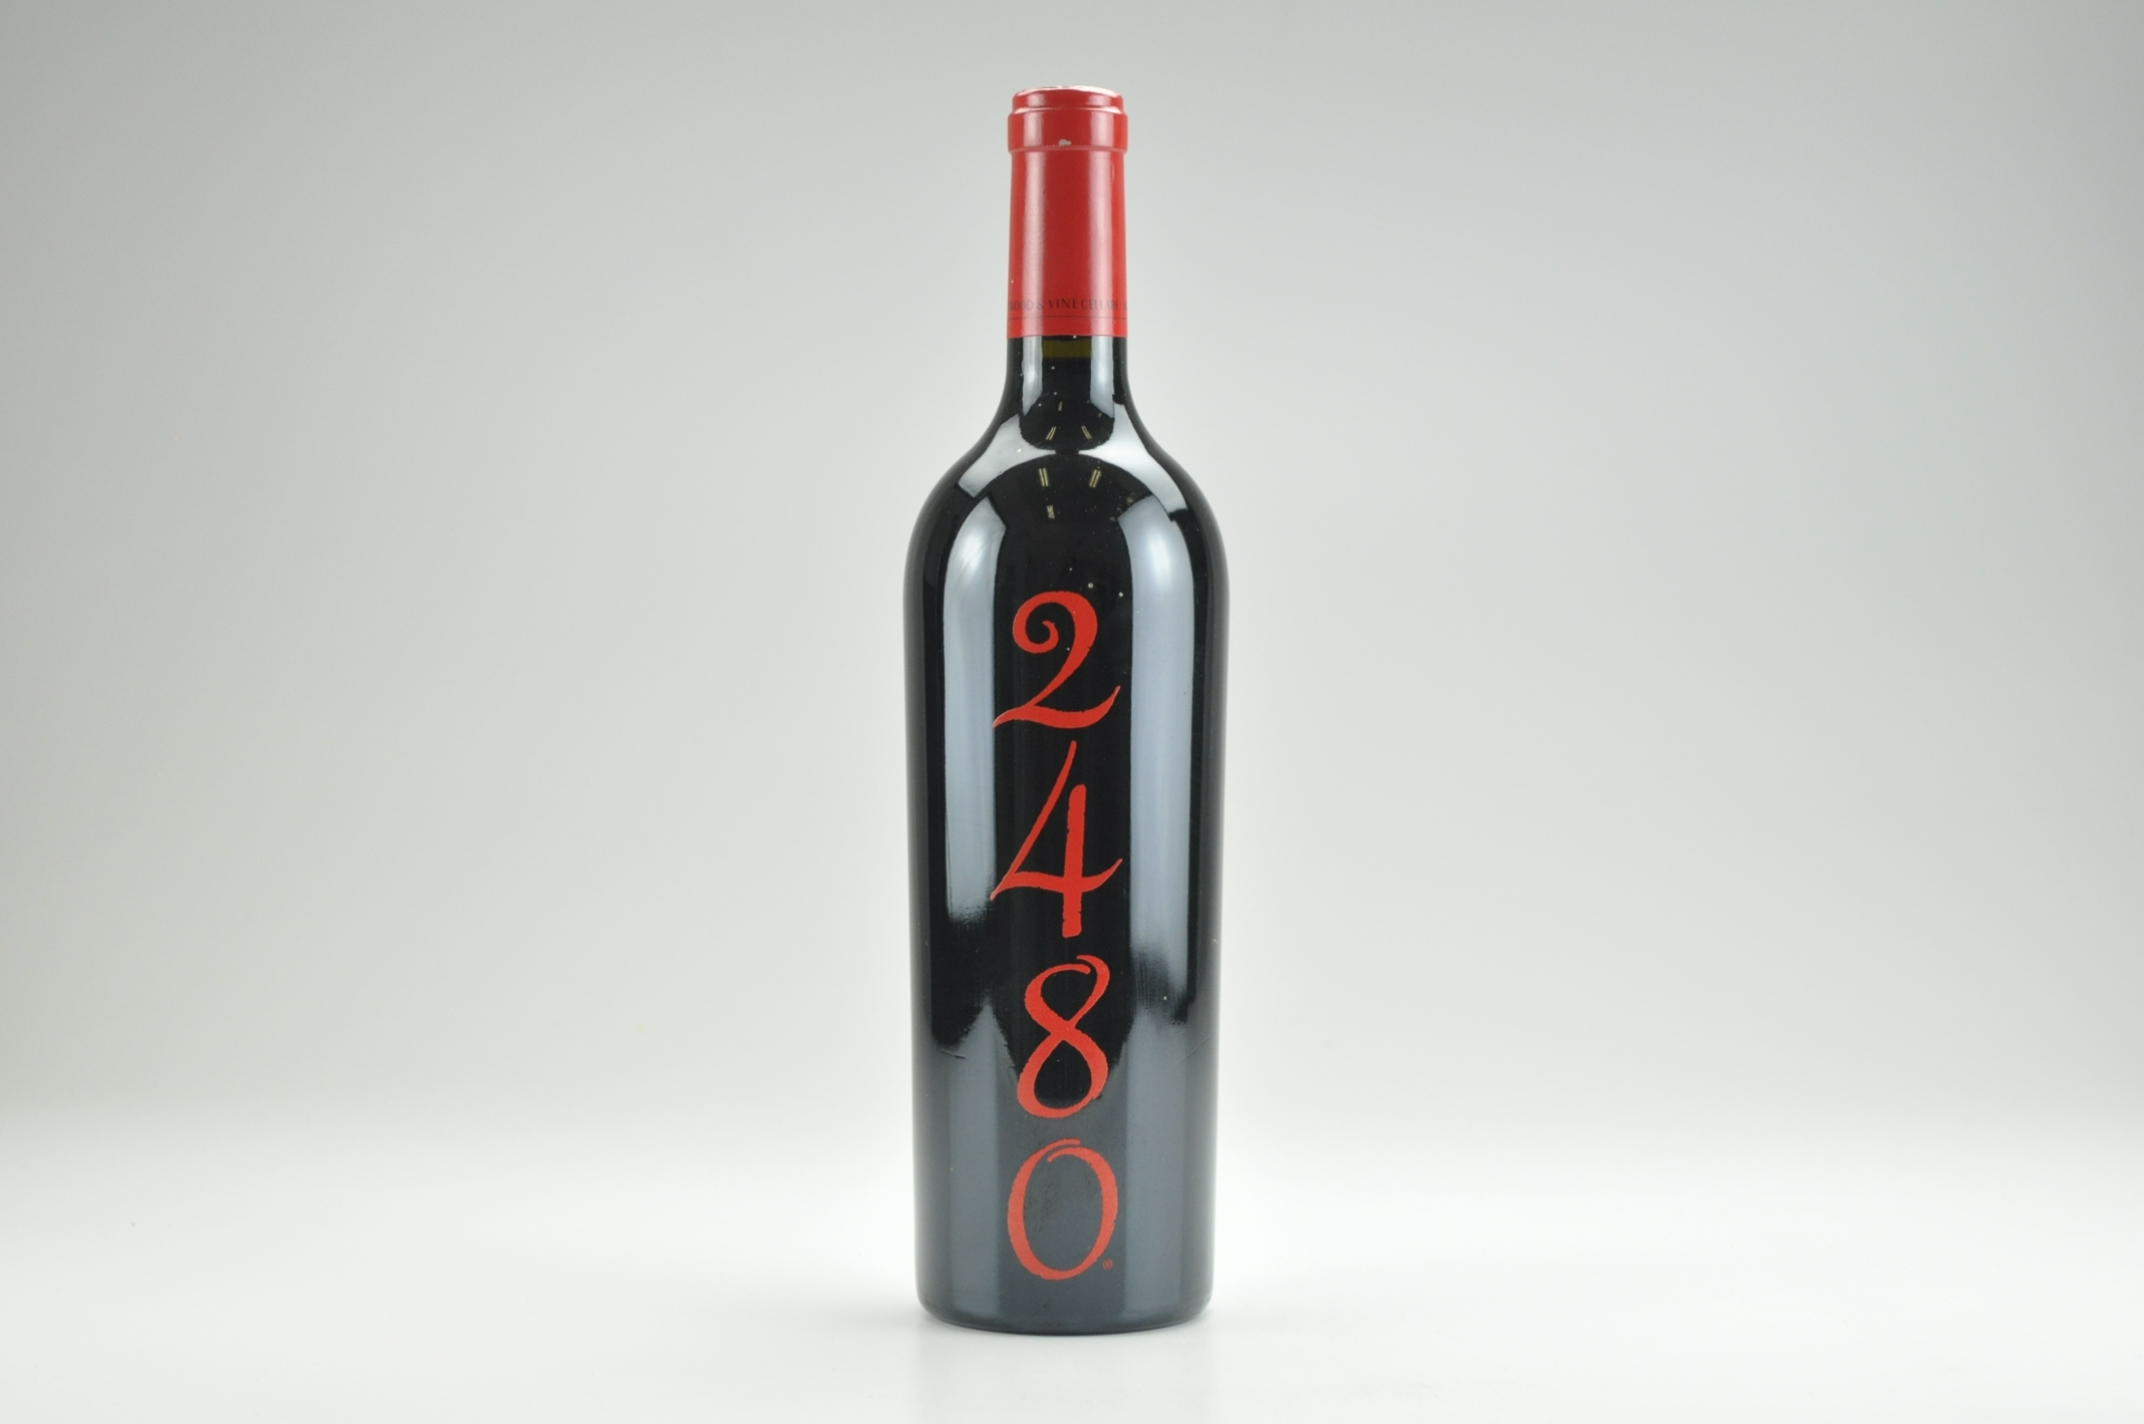 2003 Hollywood & Vine 2480 Cabernet Sauvignon, Napa Valley